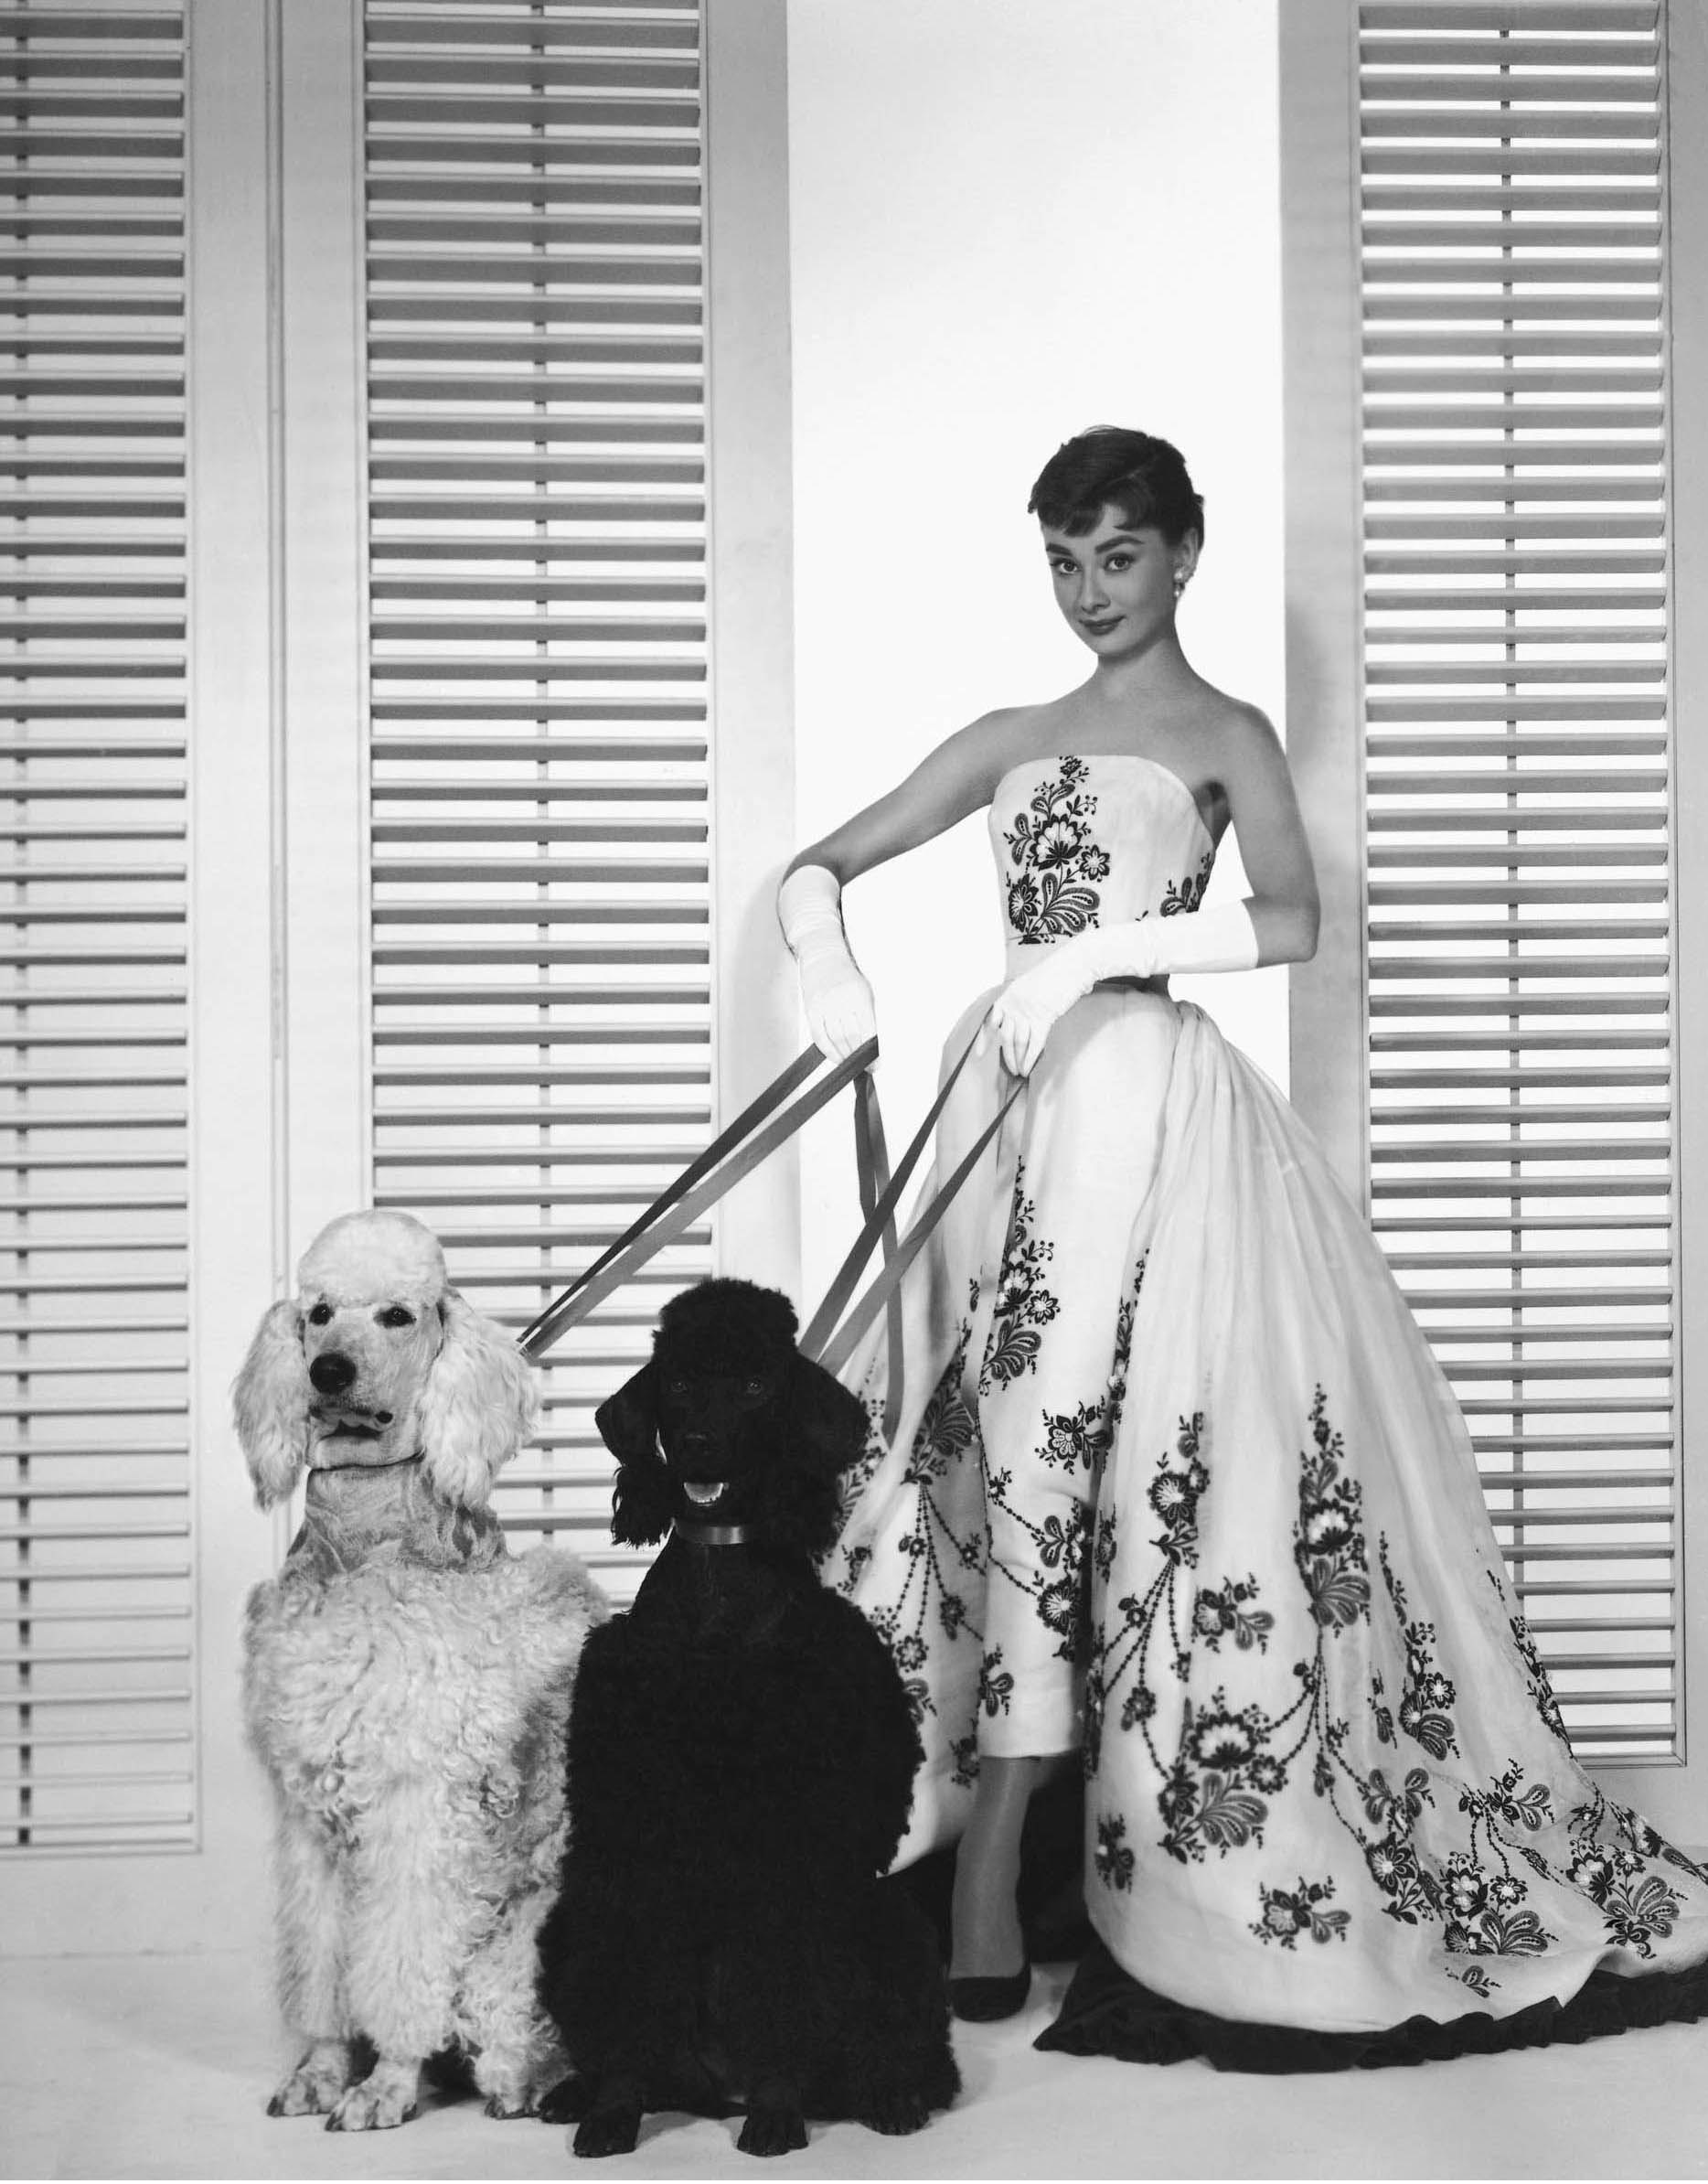 audrey-hepburn-as-sabrina-fairchild-in-the-1954.jpg